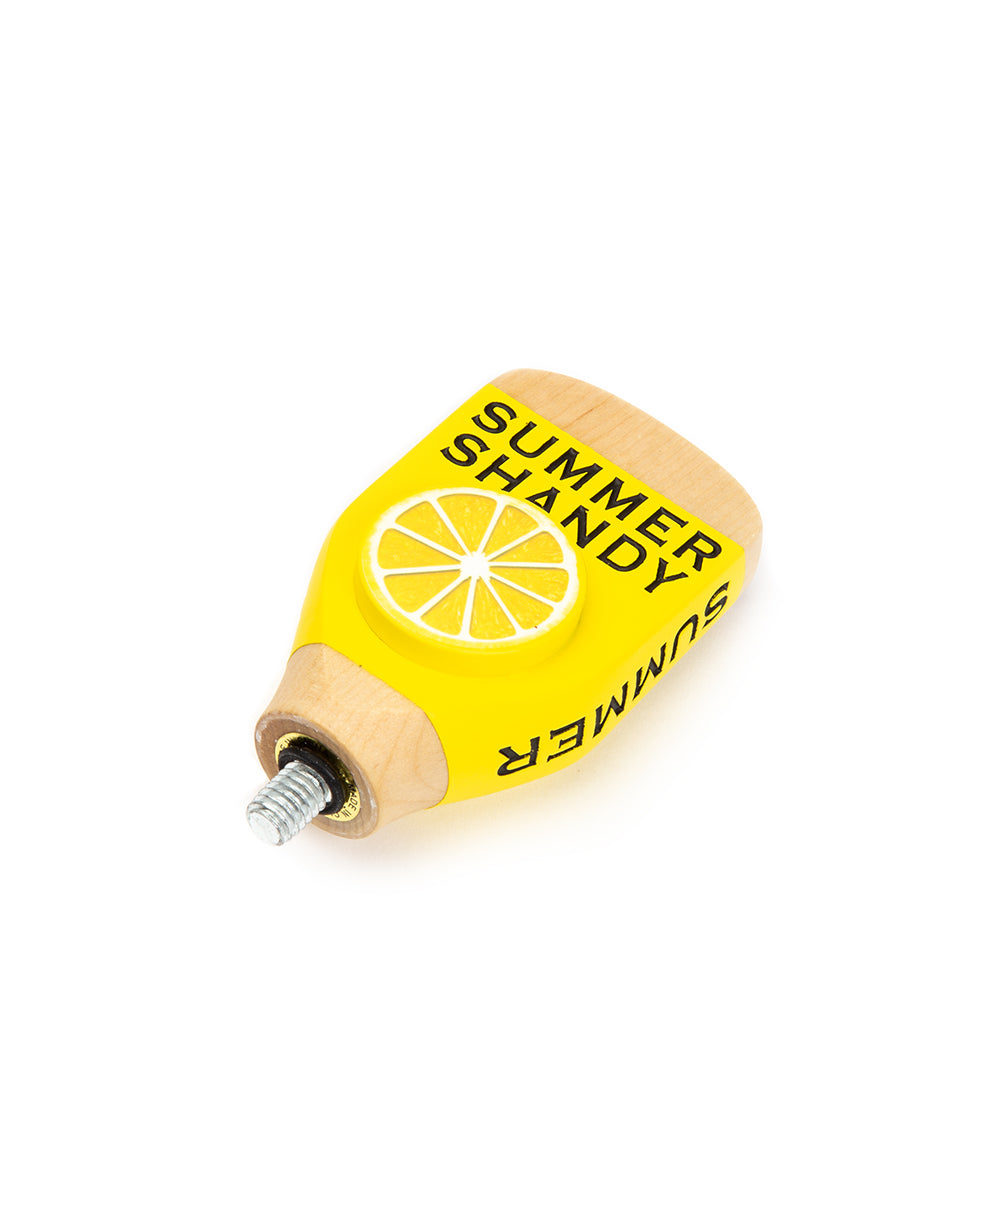 SUMMER SHANDY TAP TOP